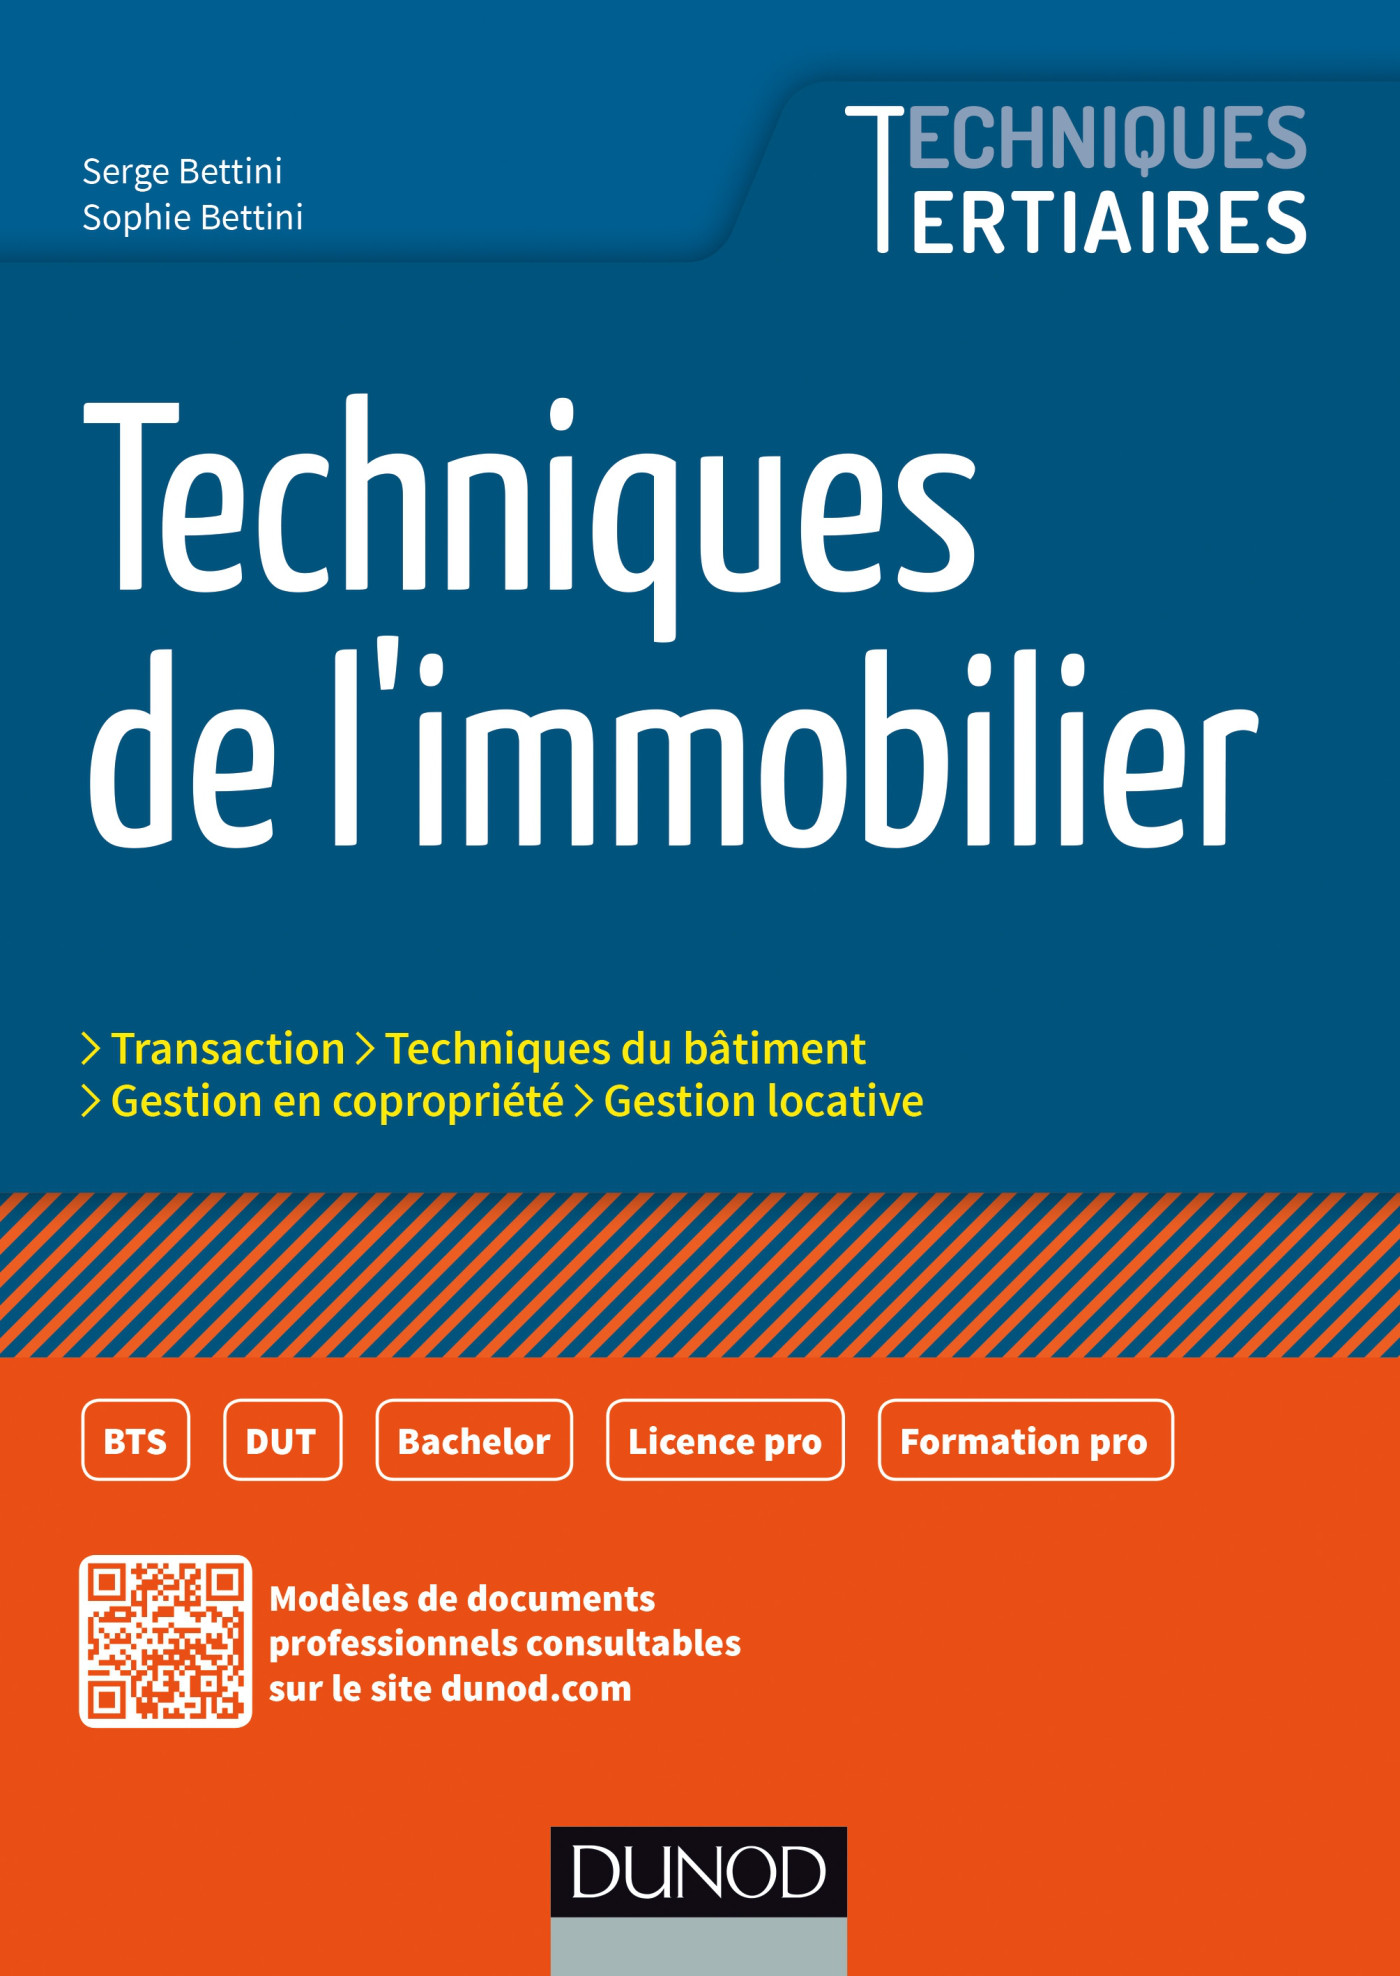 Techniques de l 39 immobilier serge bettini sophie bettini librairie nu - L as de l immobilier ...